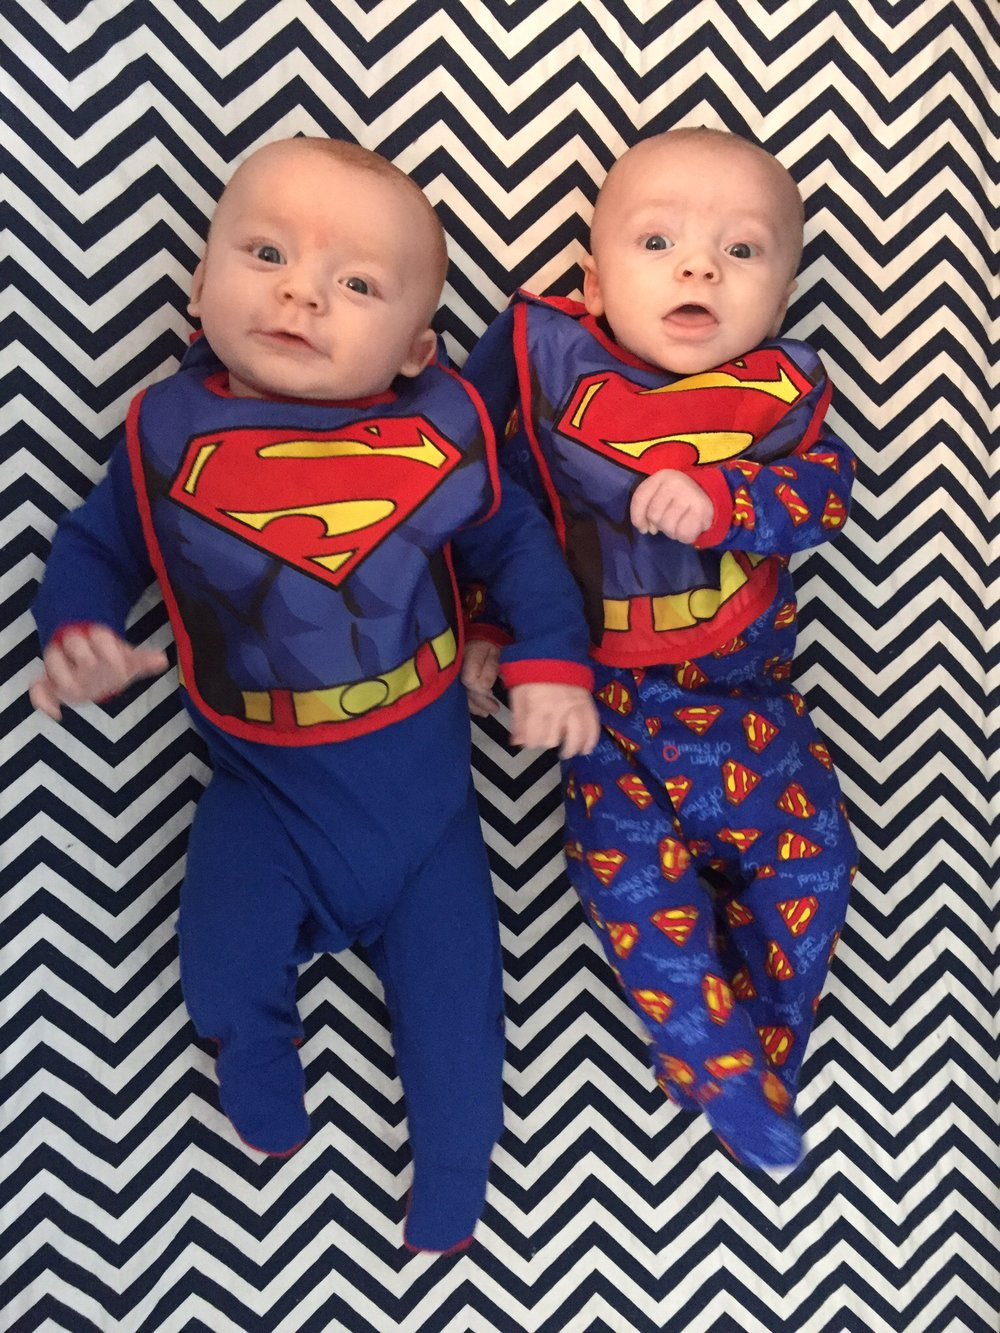 Joshua & Julian, 3 months old, feeling super